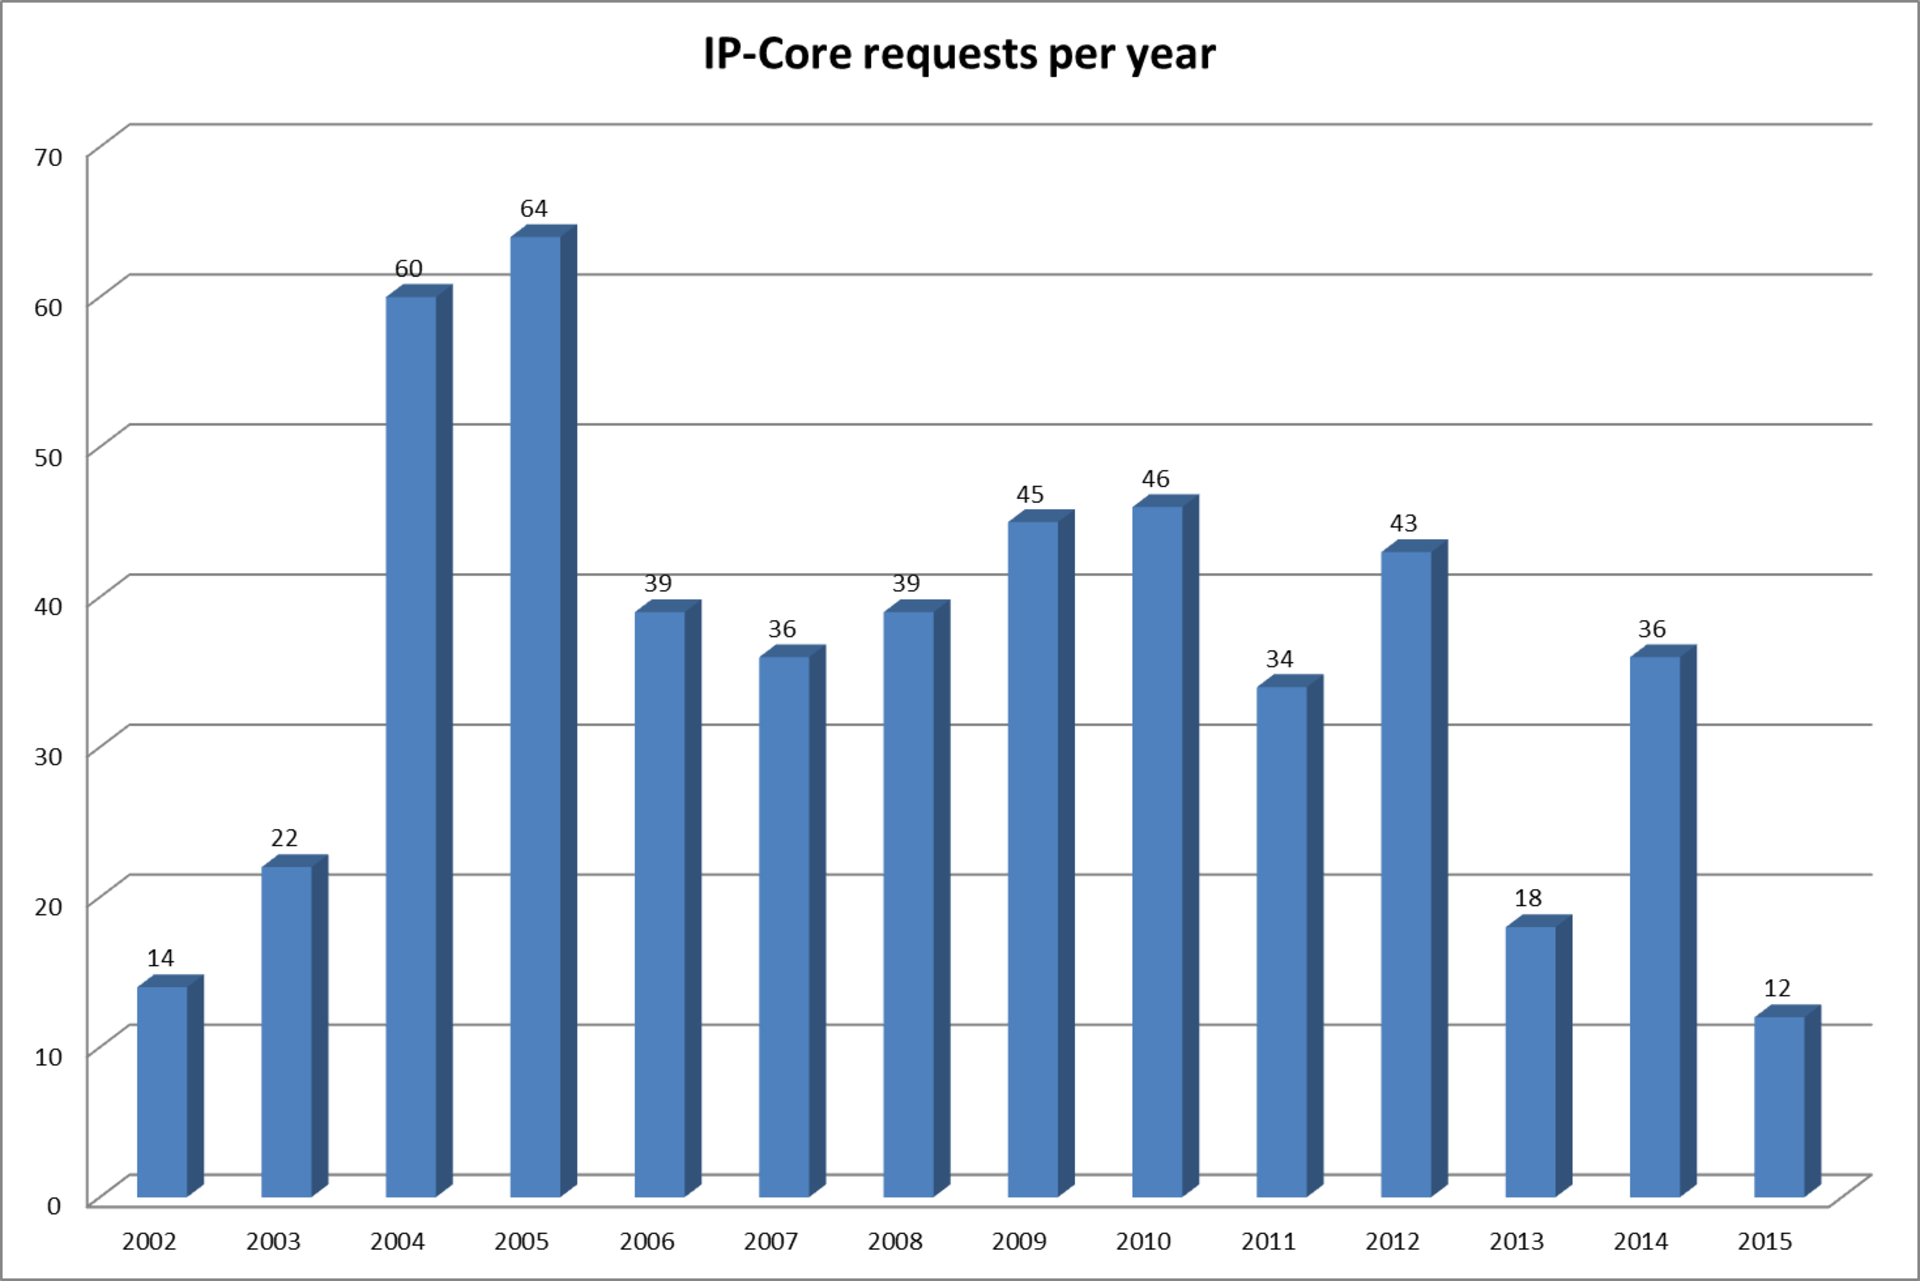 Number of IP-Core requests per year